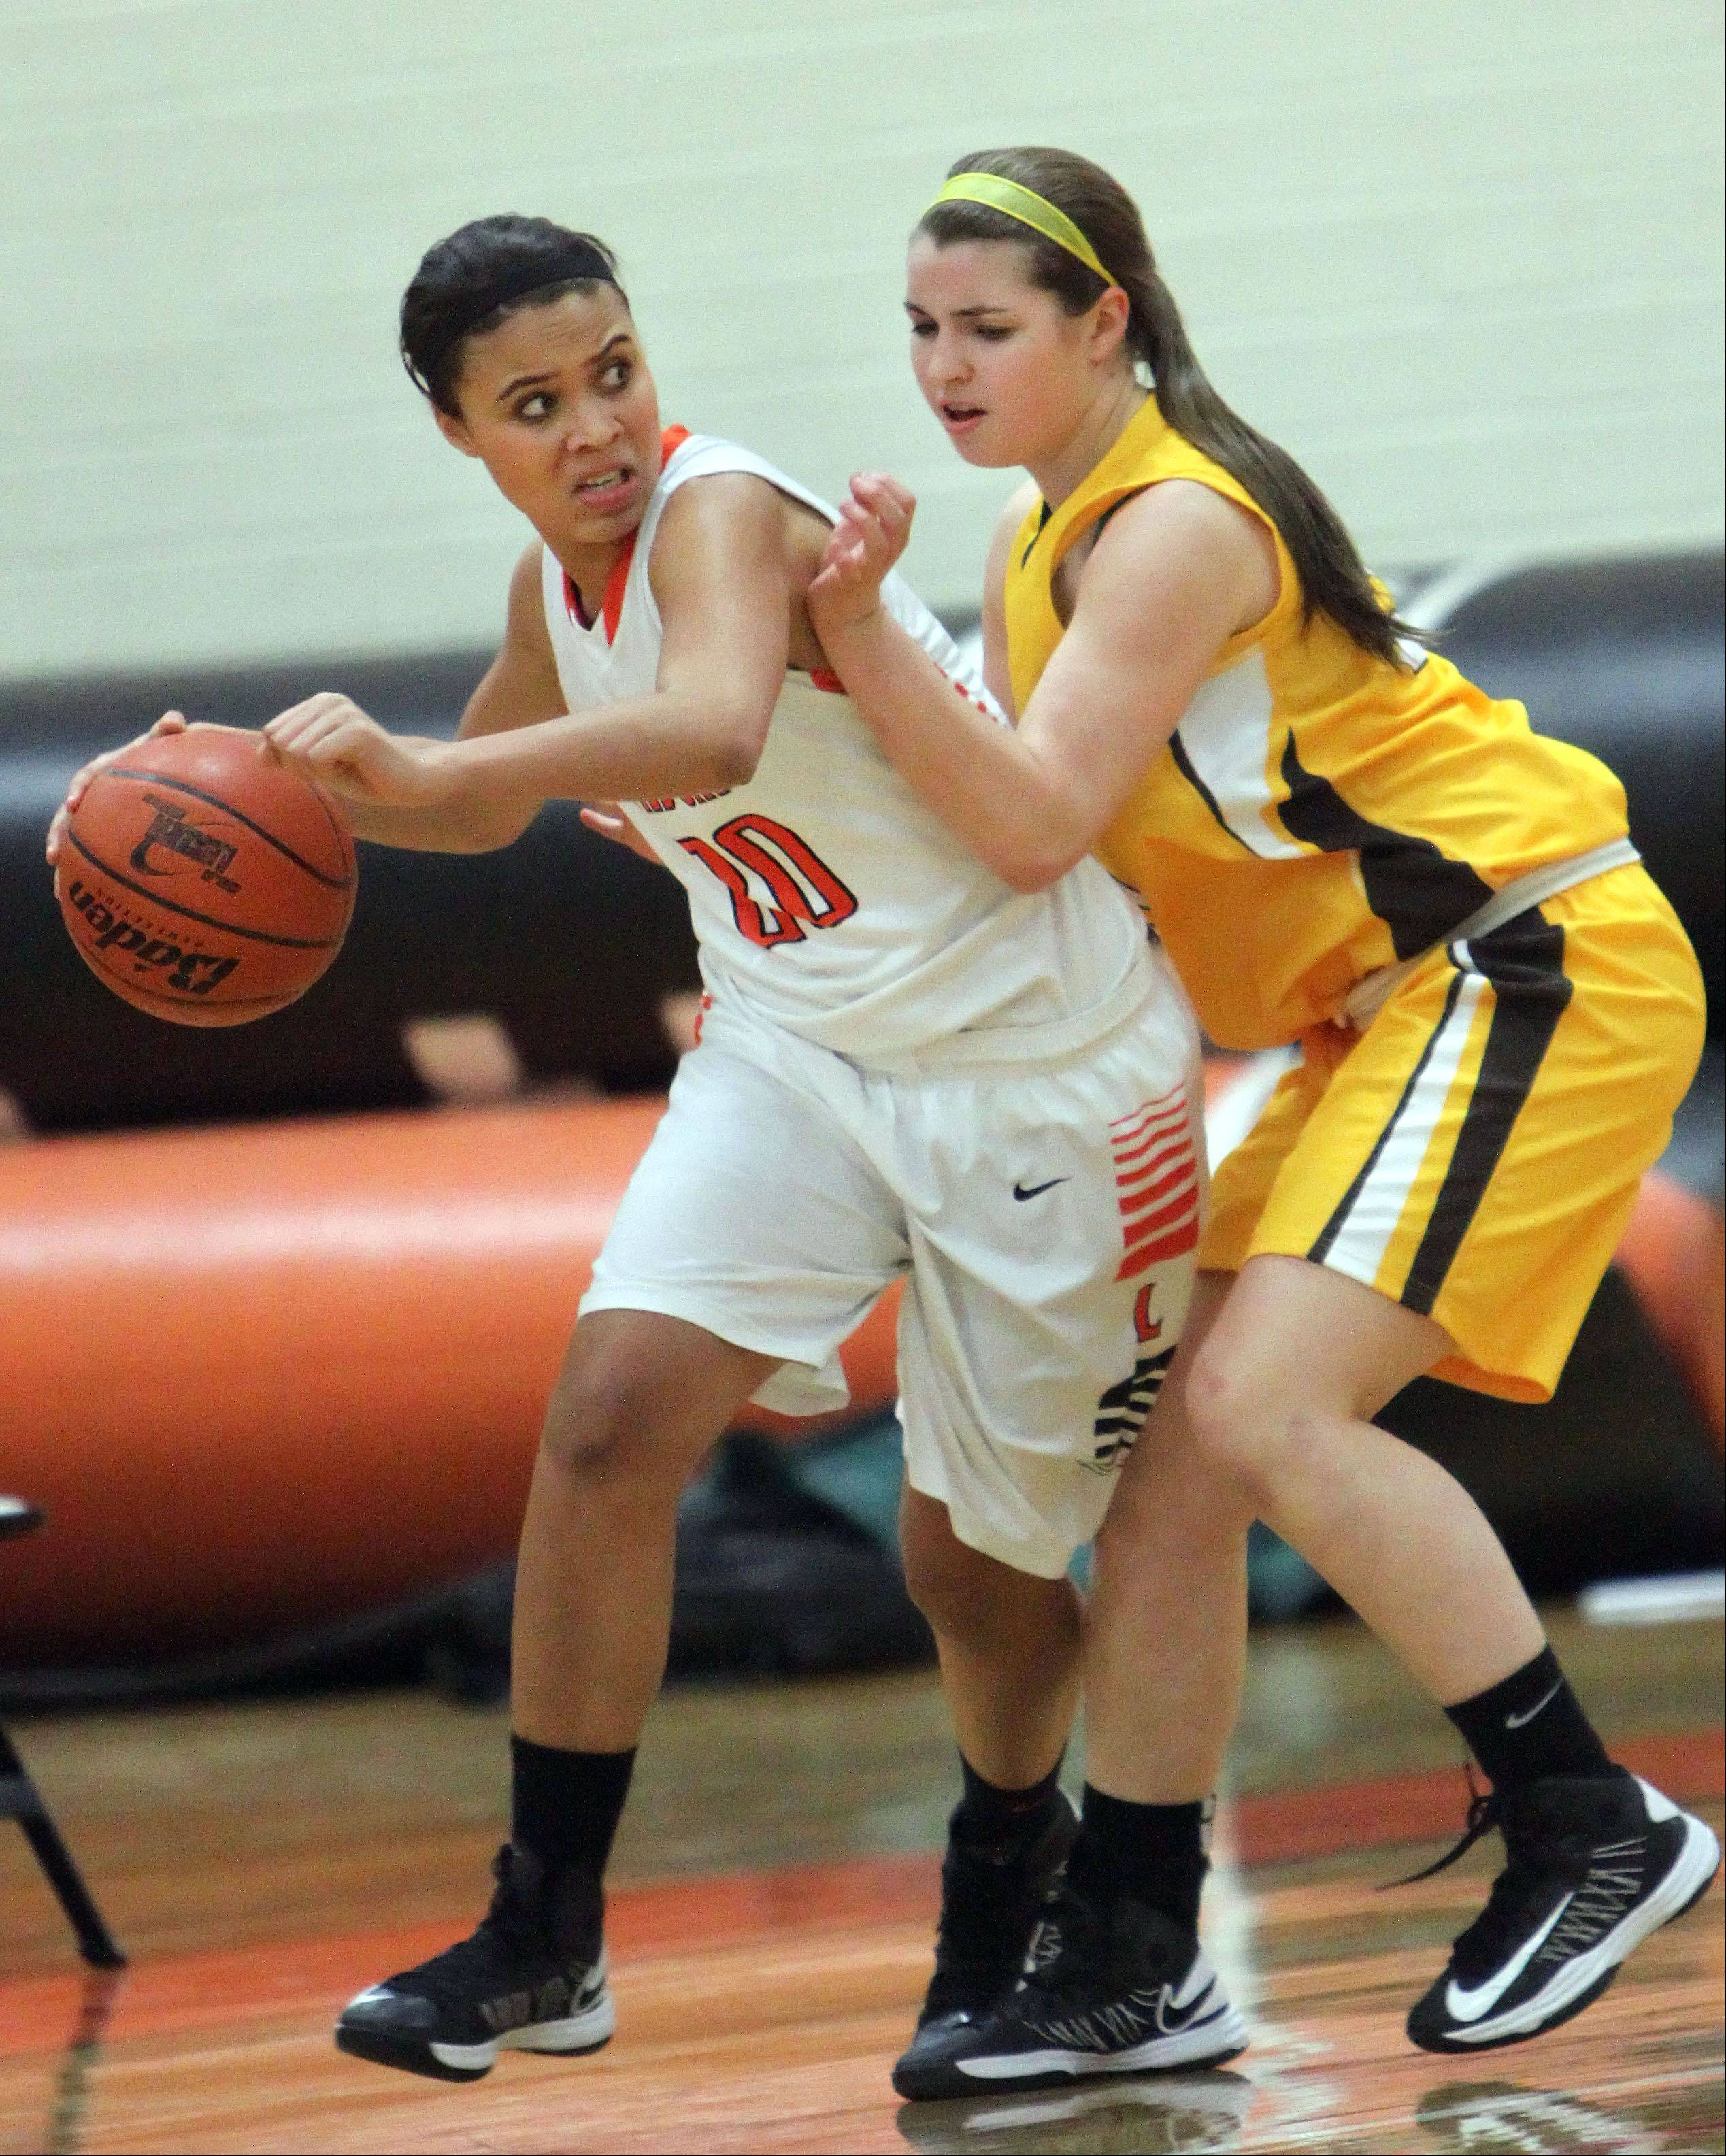 Libertyville's Jenna Slobodnik, left, drives on Carmel's Alexa Svoboda on Wednesday night at Libertyville.